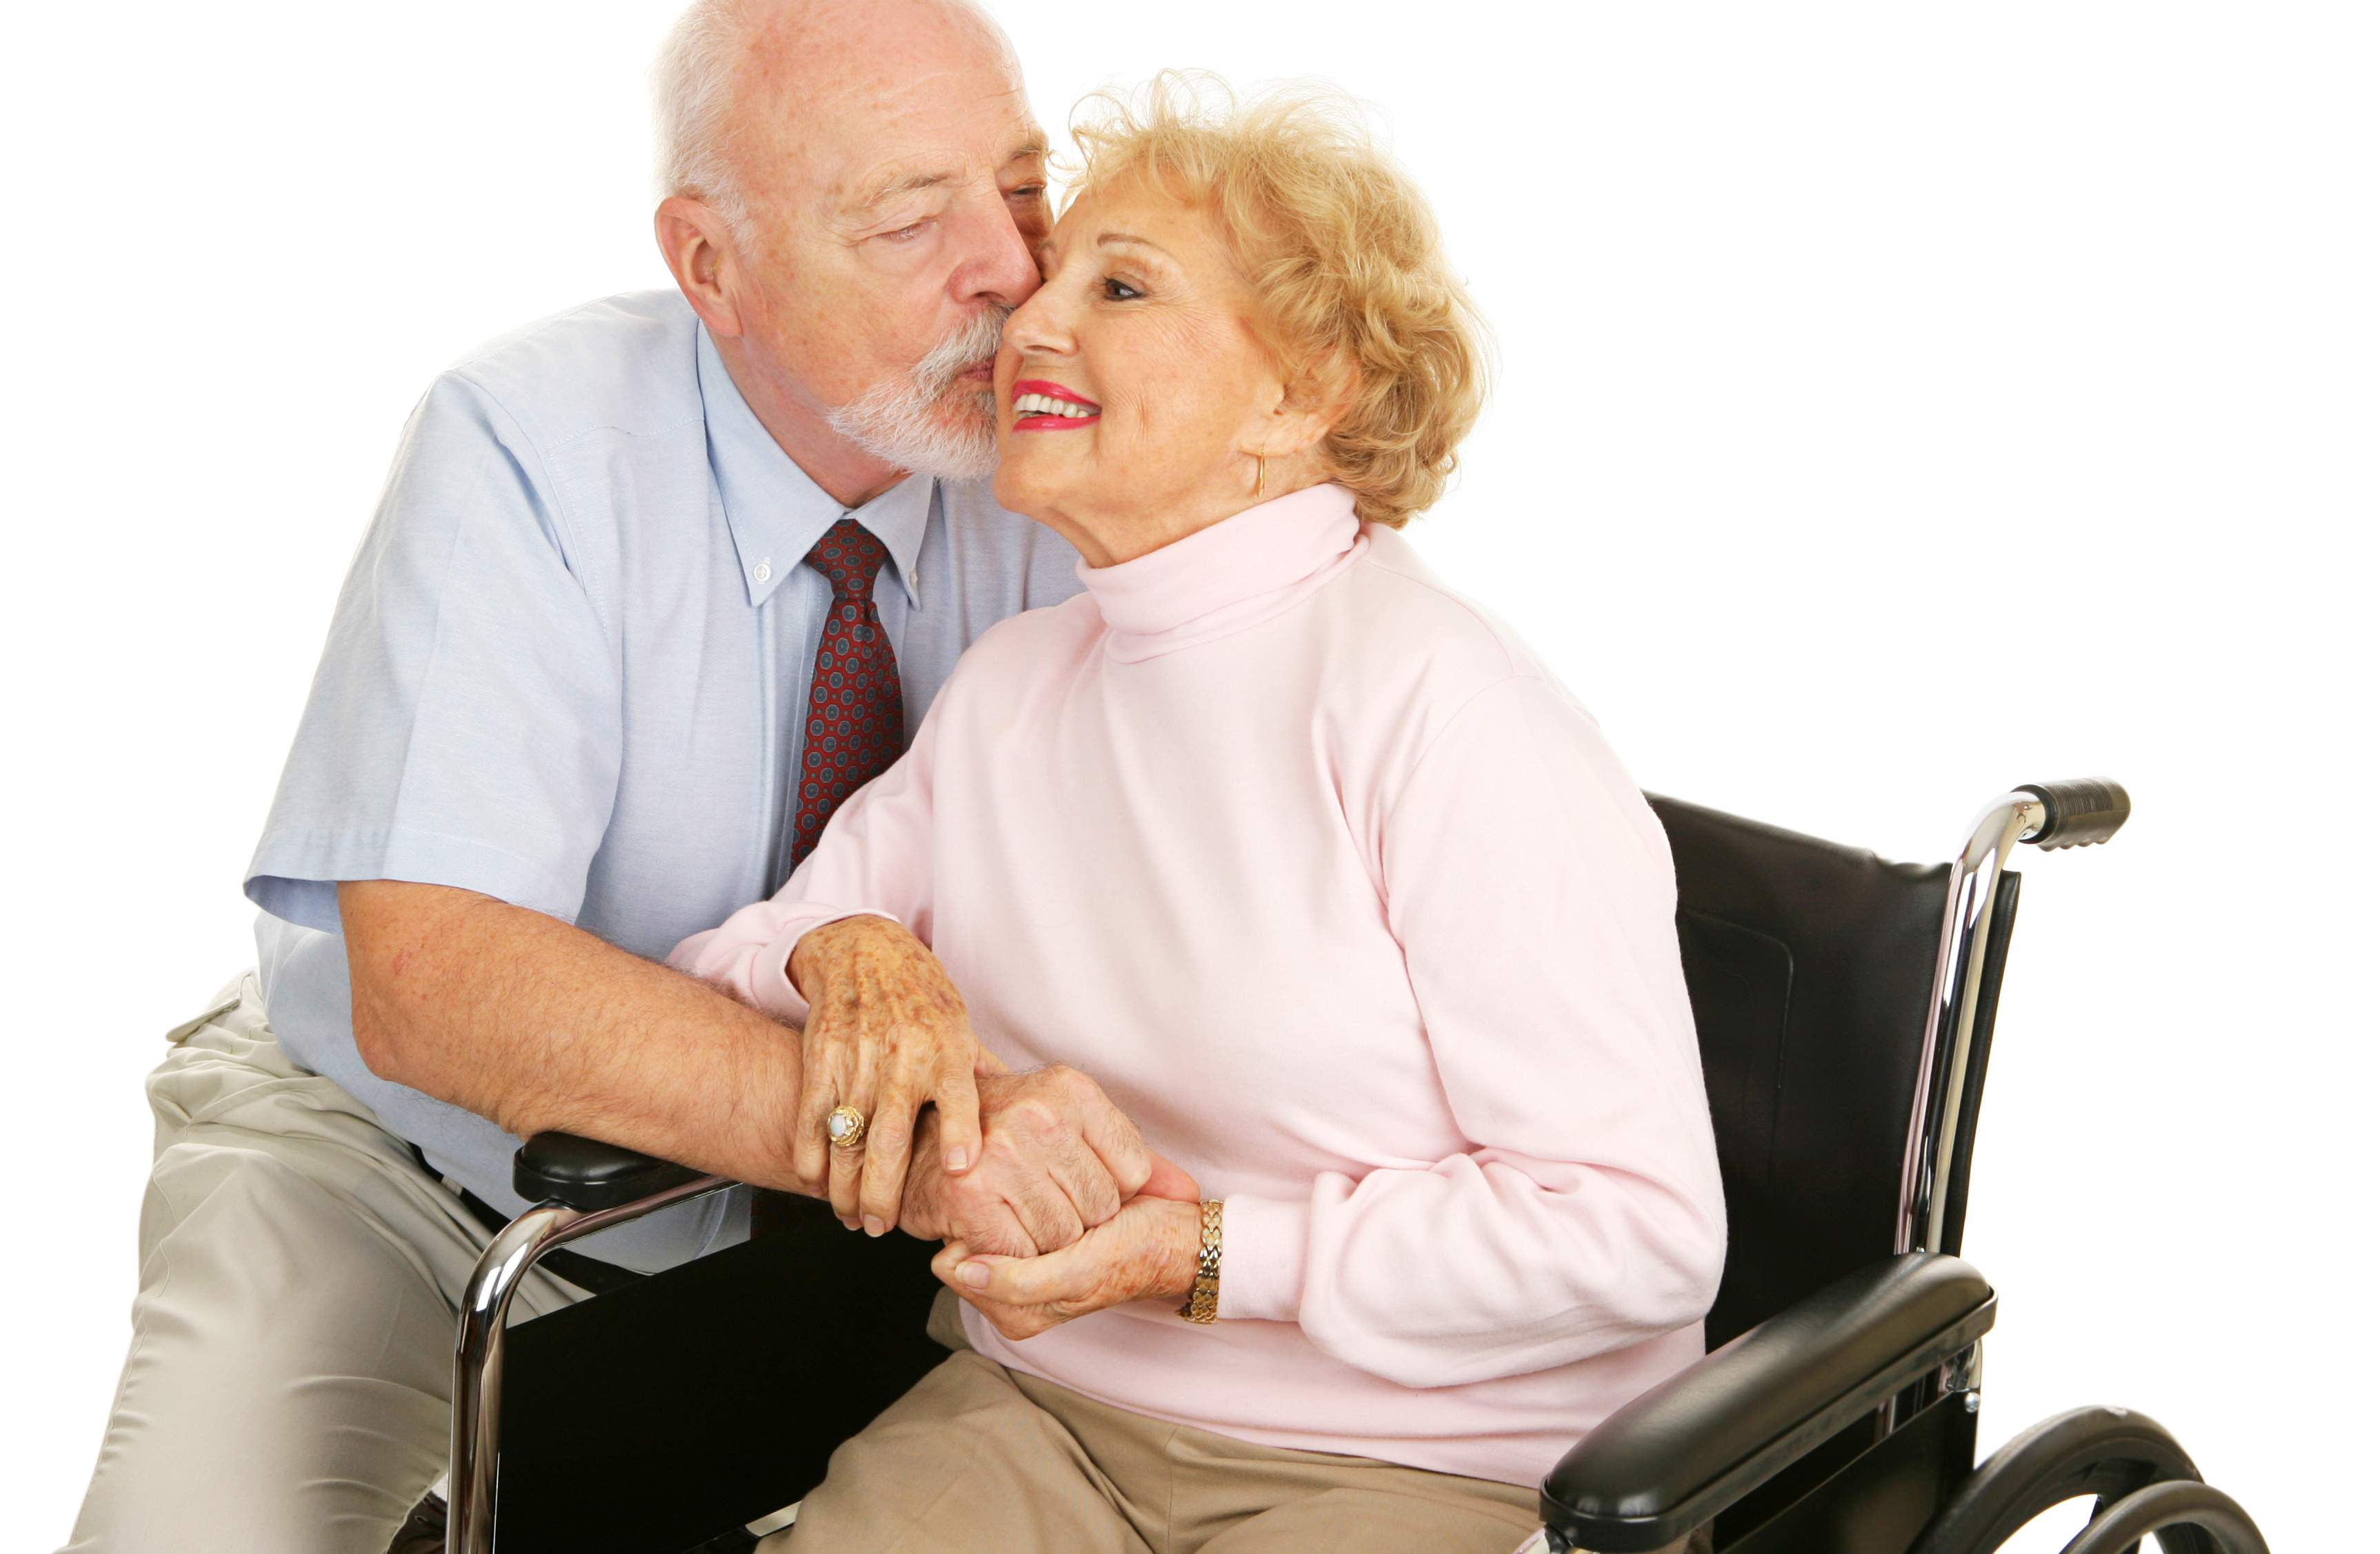 senior couple love each other and care for an ill spouse